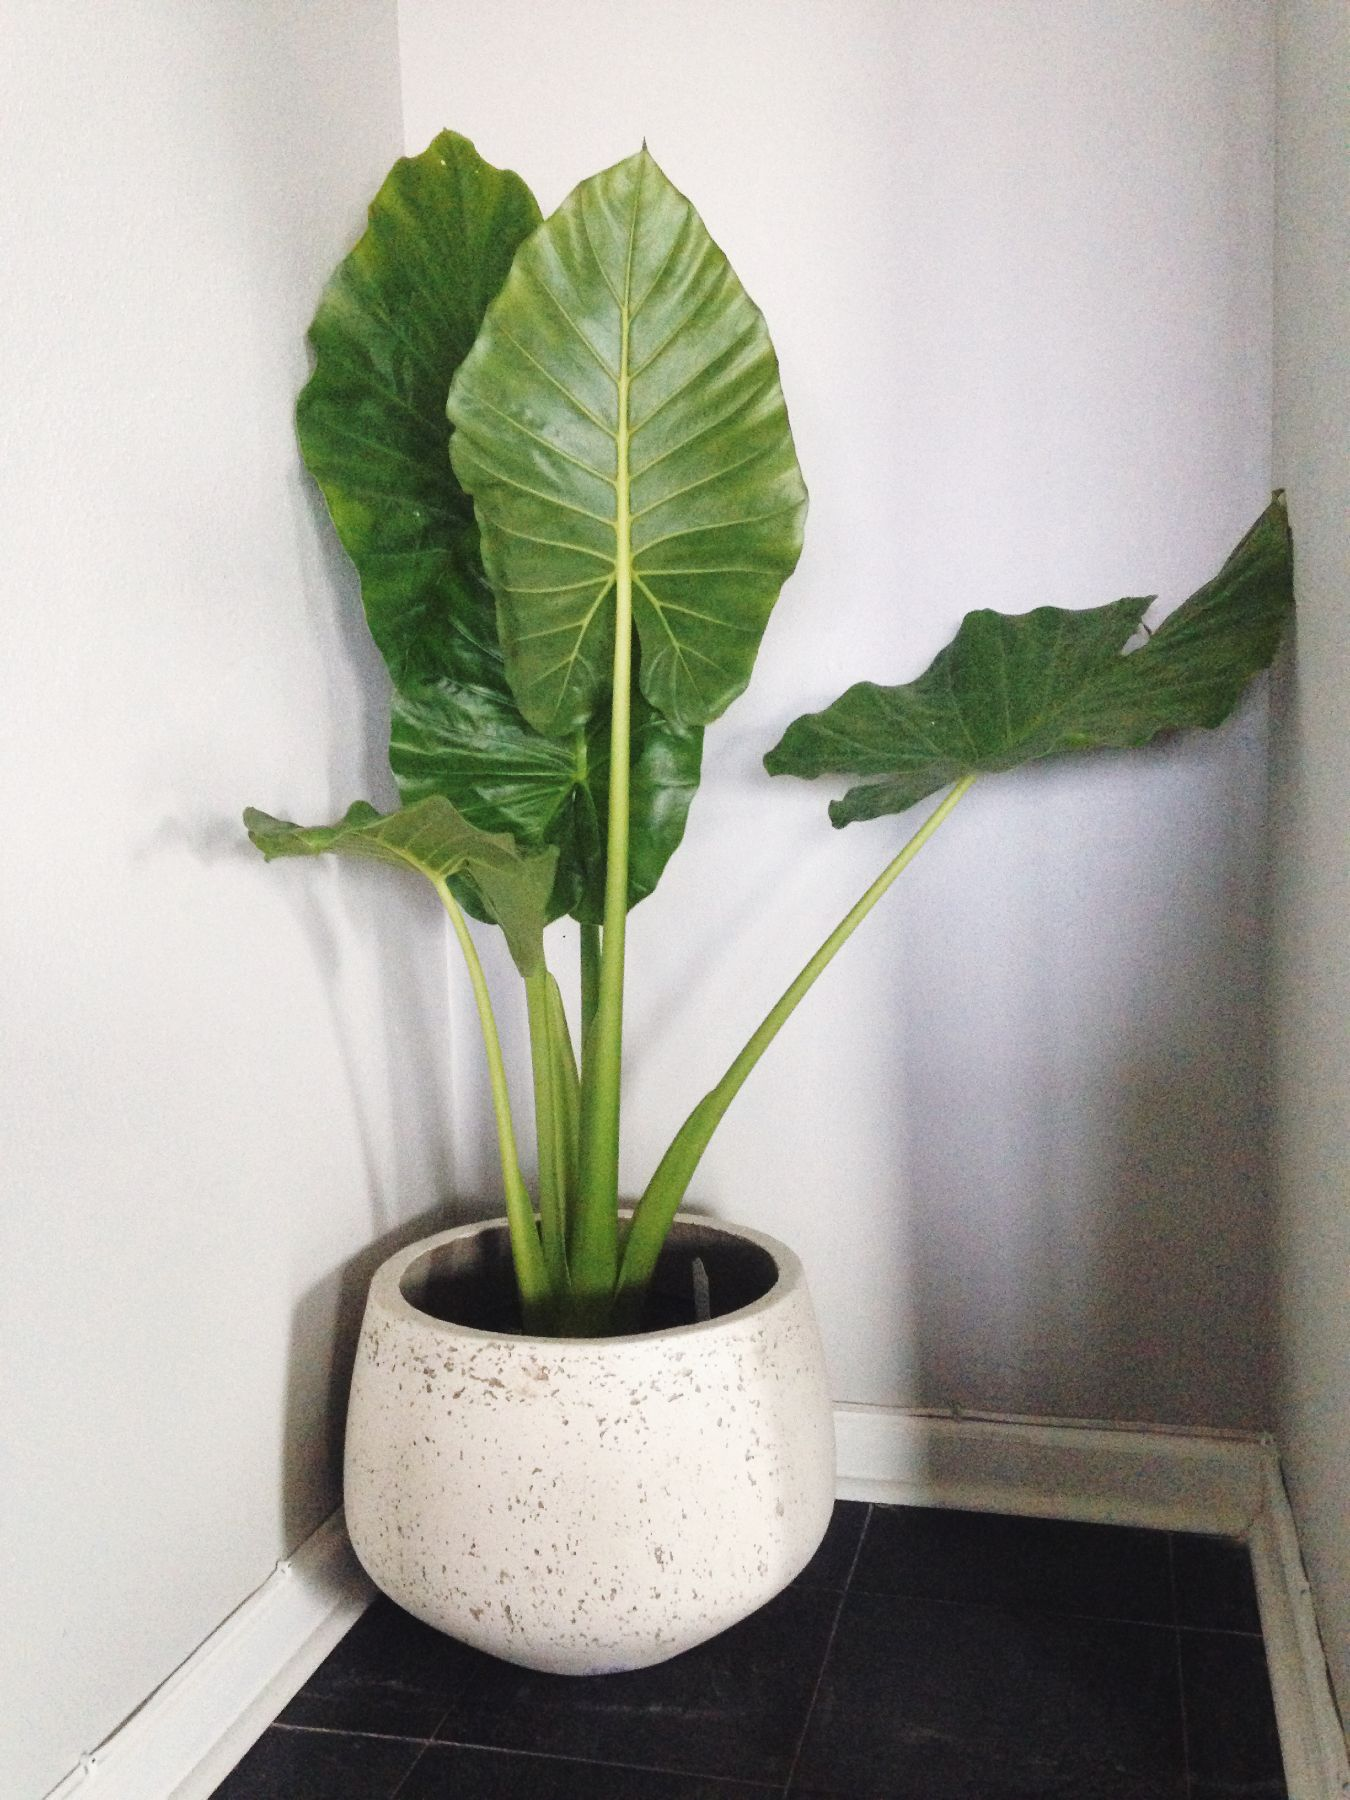 Alocasia Calidora or better known as Elephant Ears is a